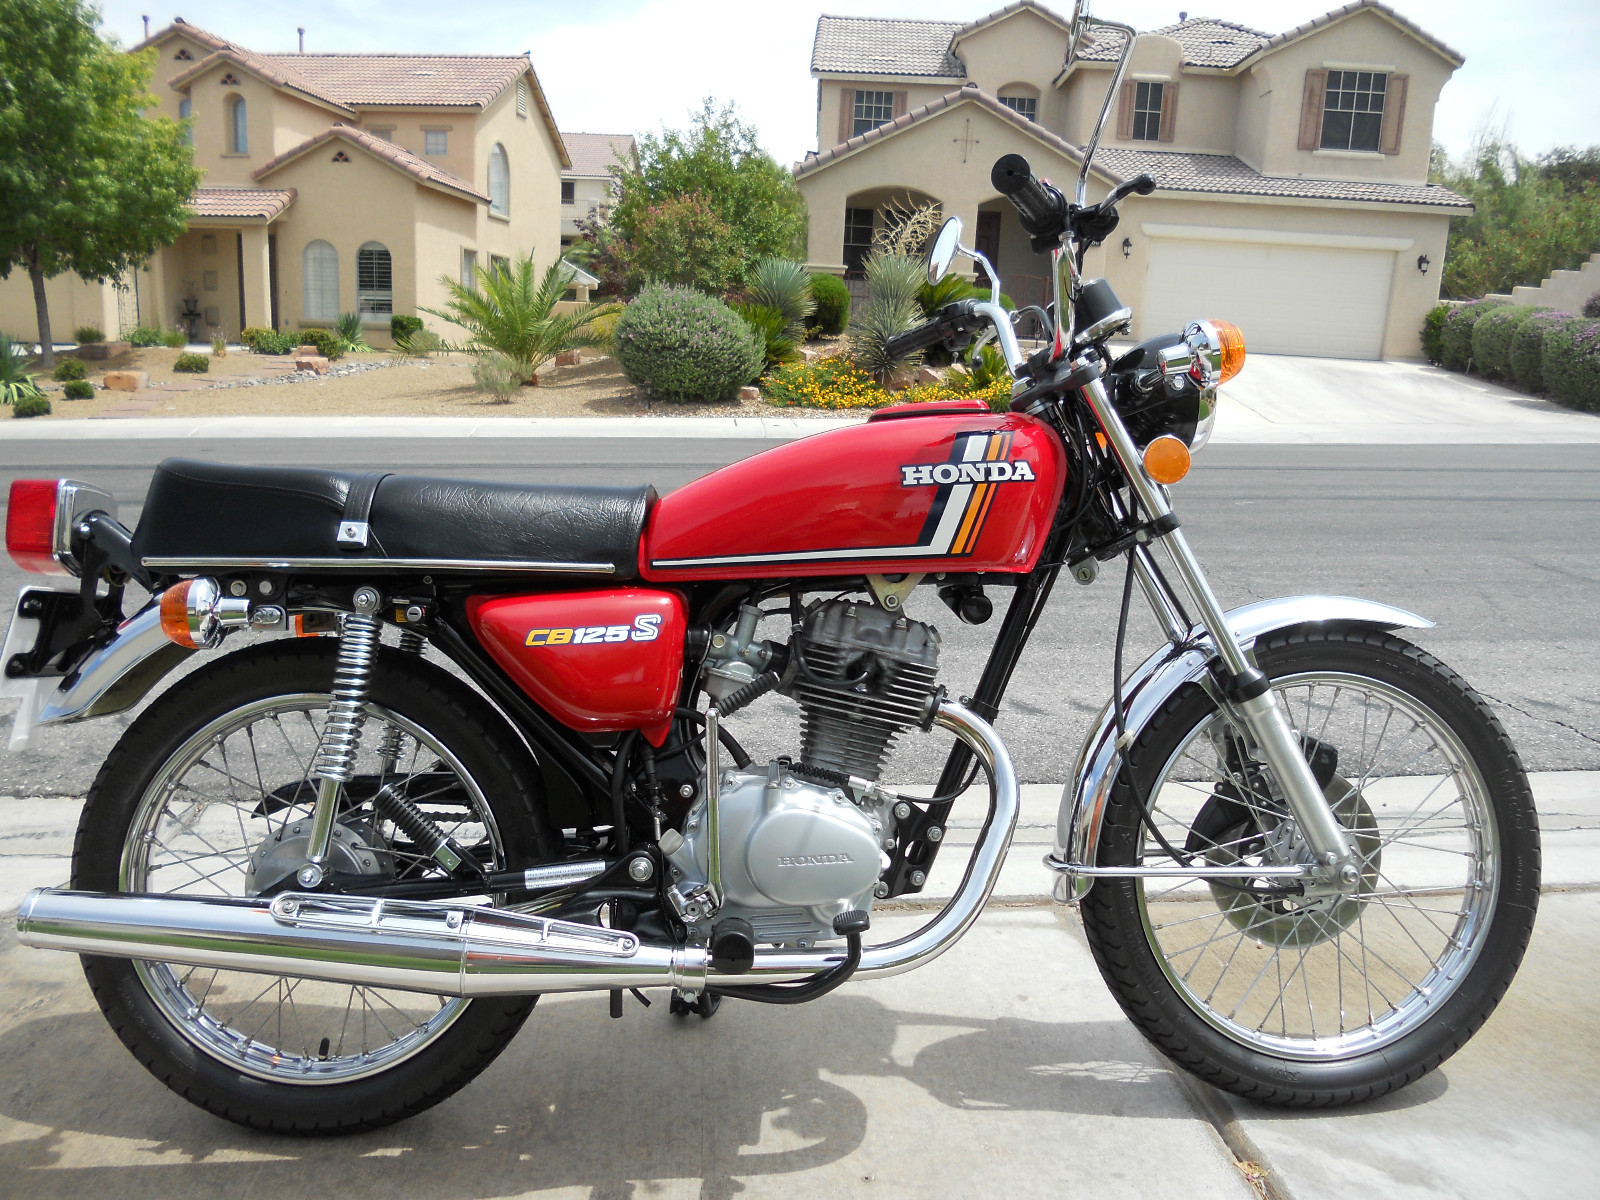 Honda Cb 125 J Manual Wiring Diagram Cb125 1978 Restored Classic Motorcycles At Bikes Rh Bikesrestored Com 100